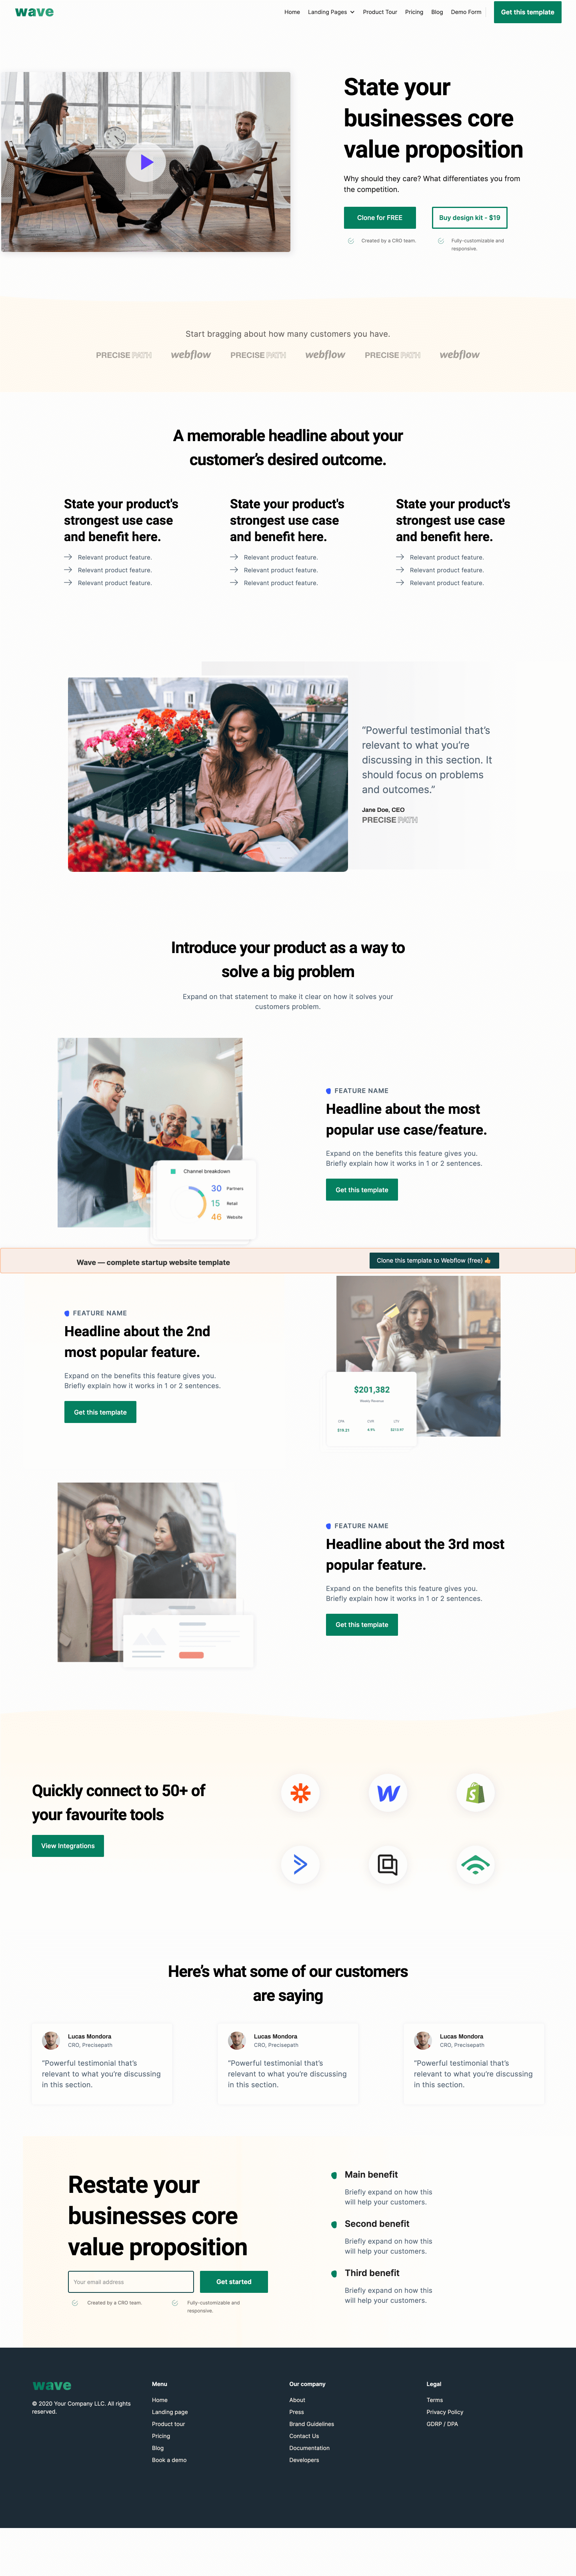 Wave Startup template (Clonable)